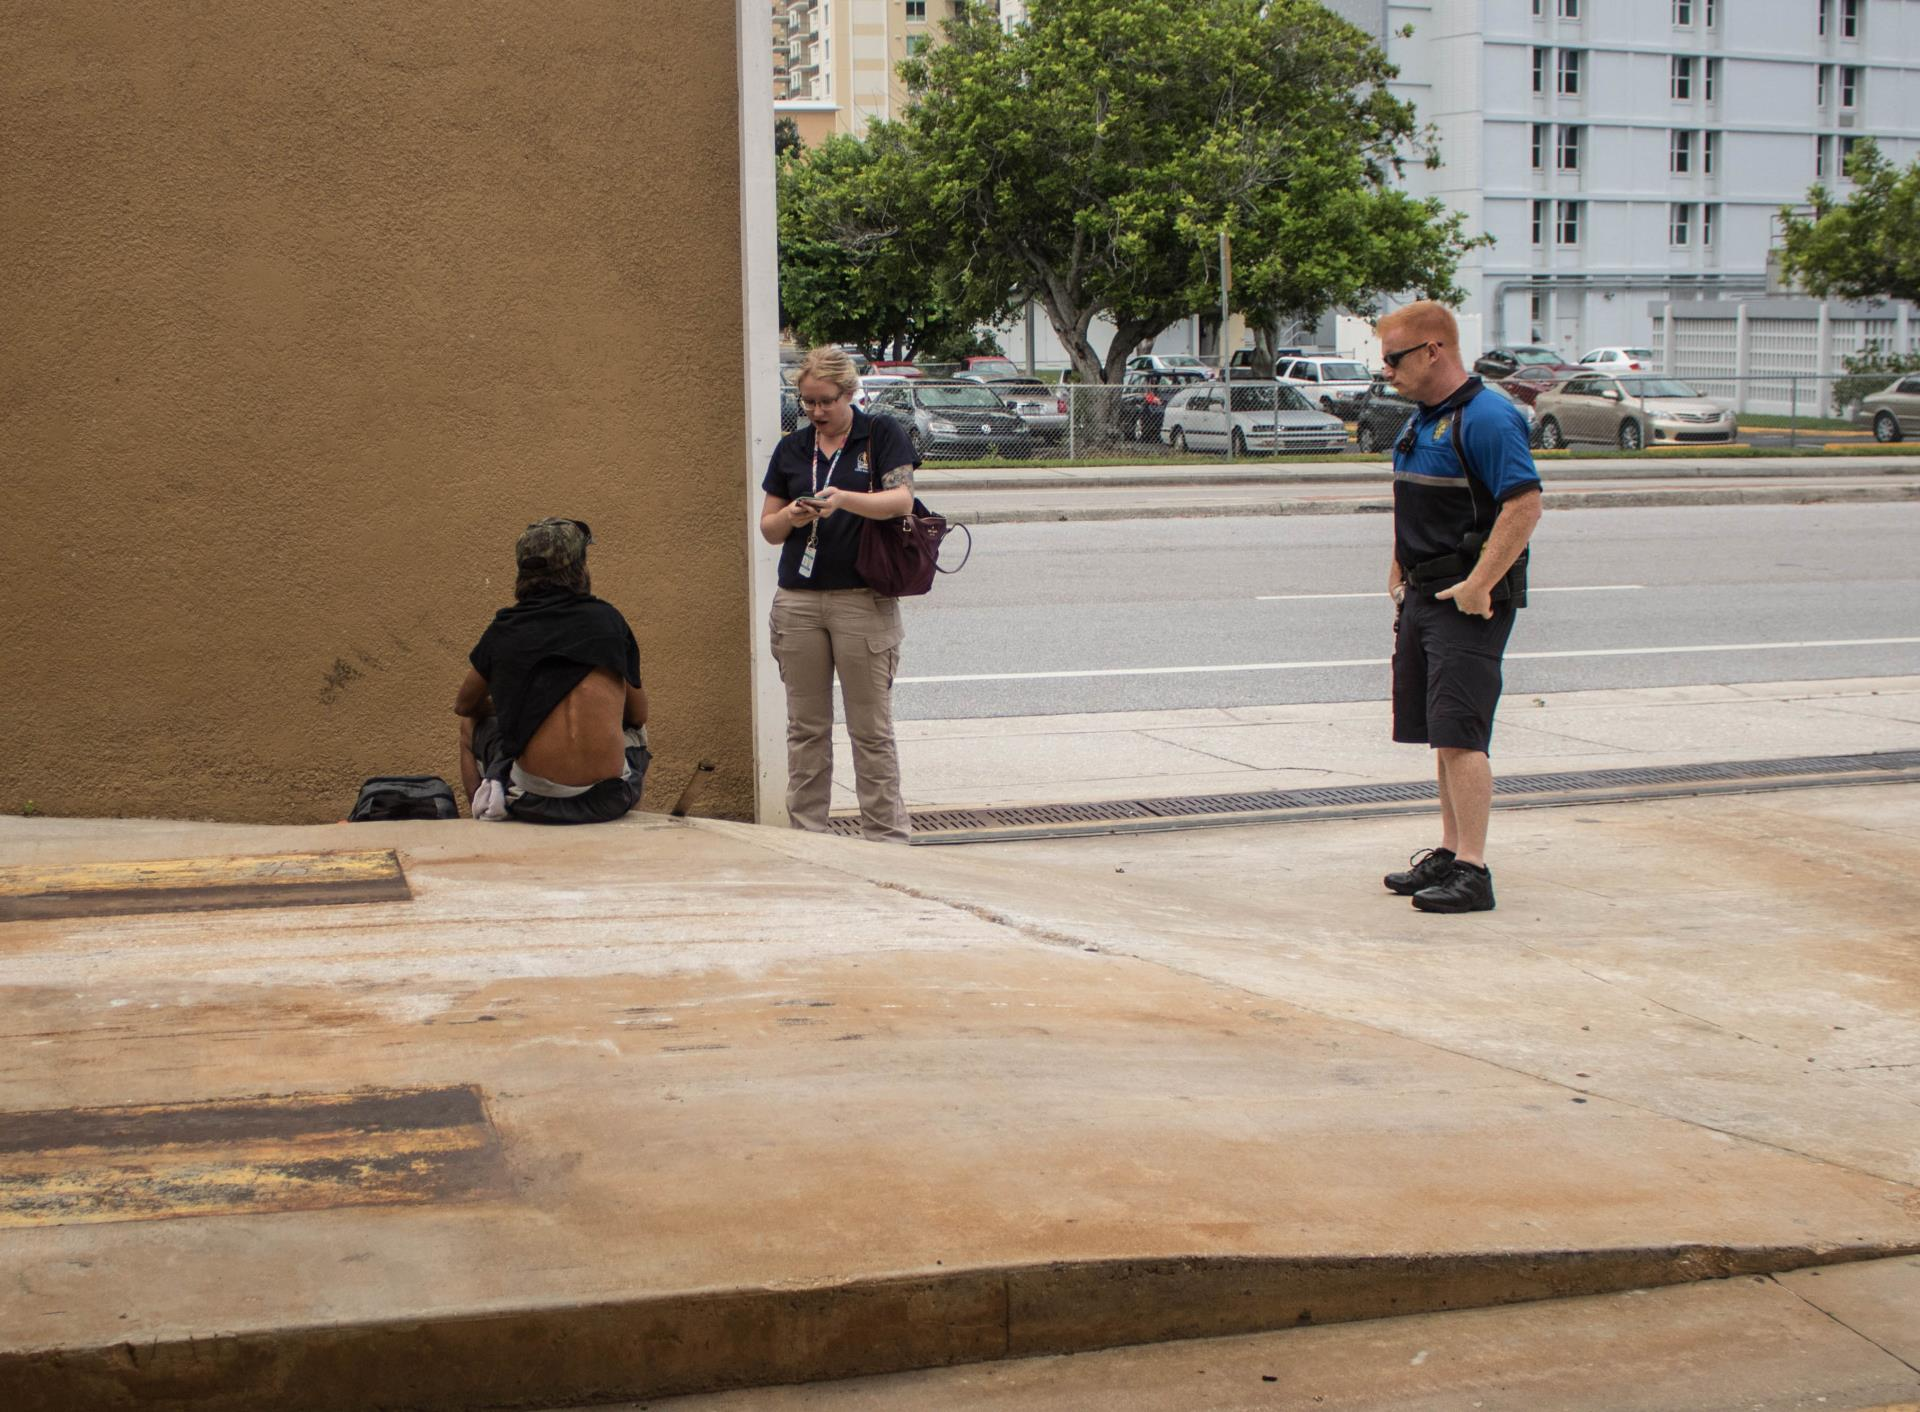 Police interacting with homeless -6